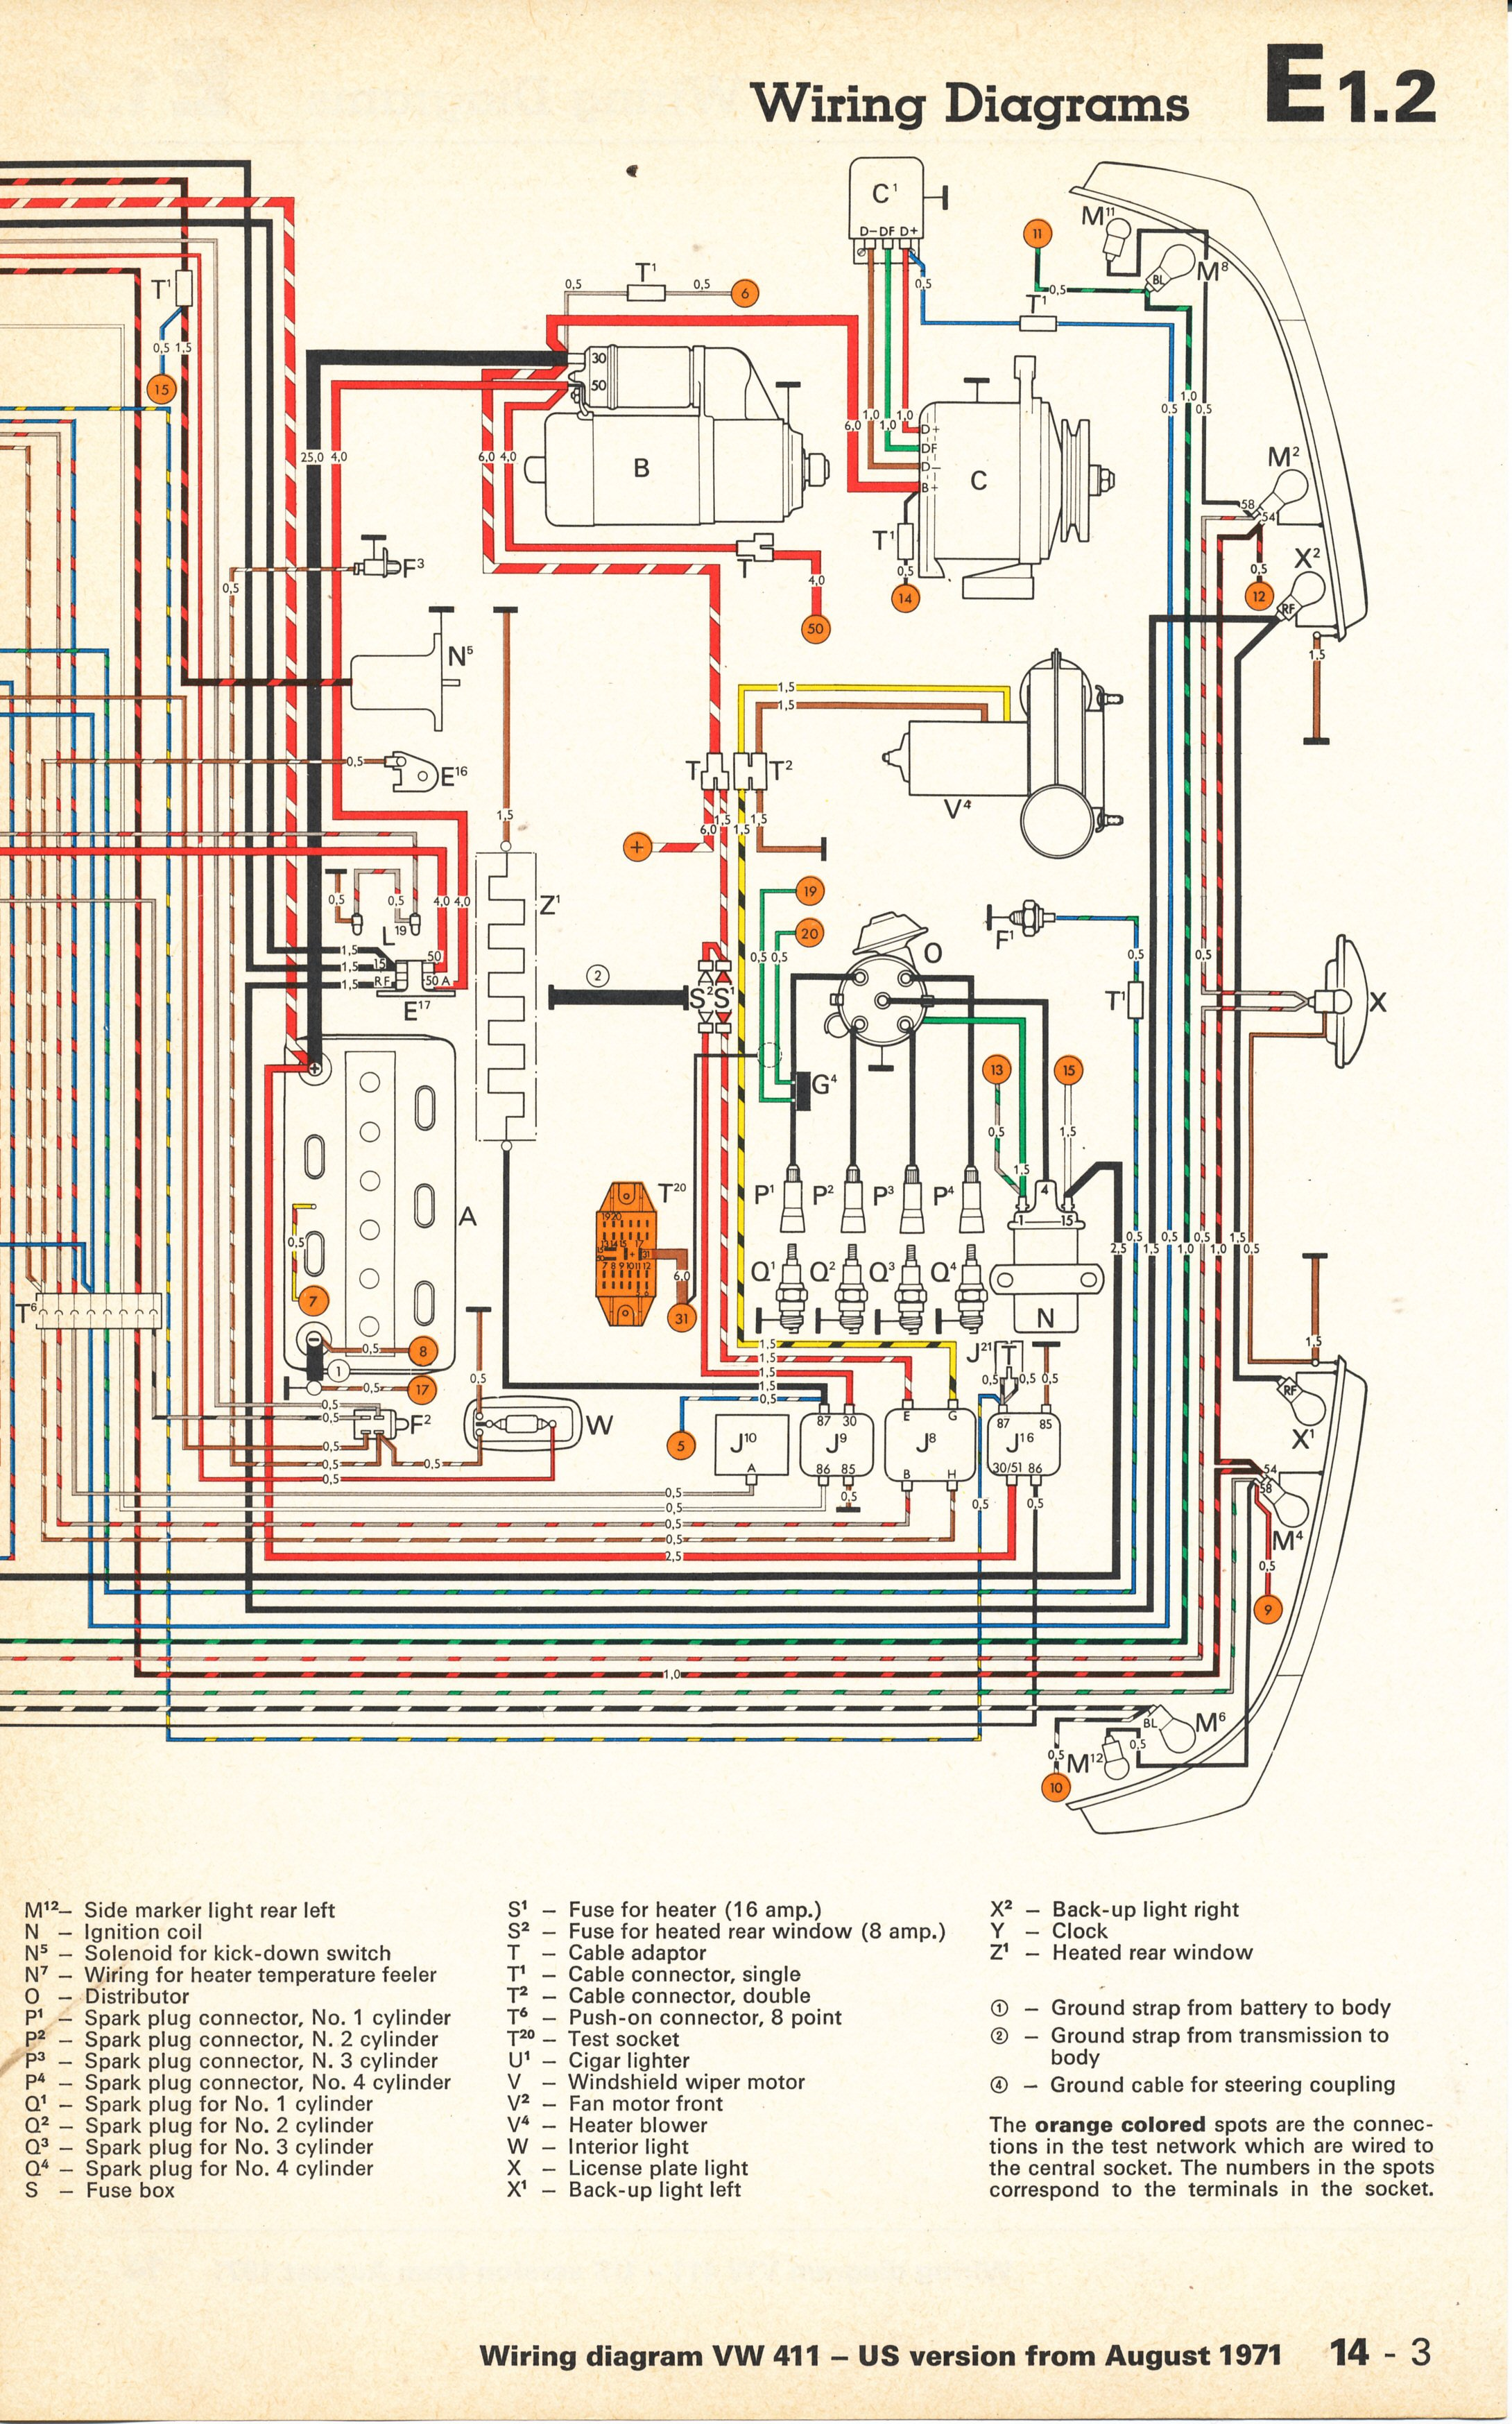 1964 Impala Heater Wiring Diagram Diagrams 1967 Ss 29 Images 64 Chevy